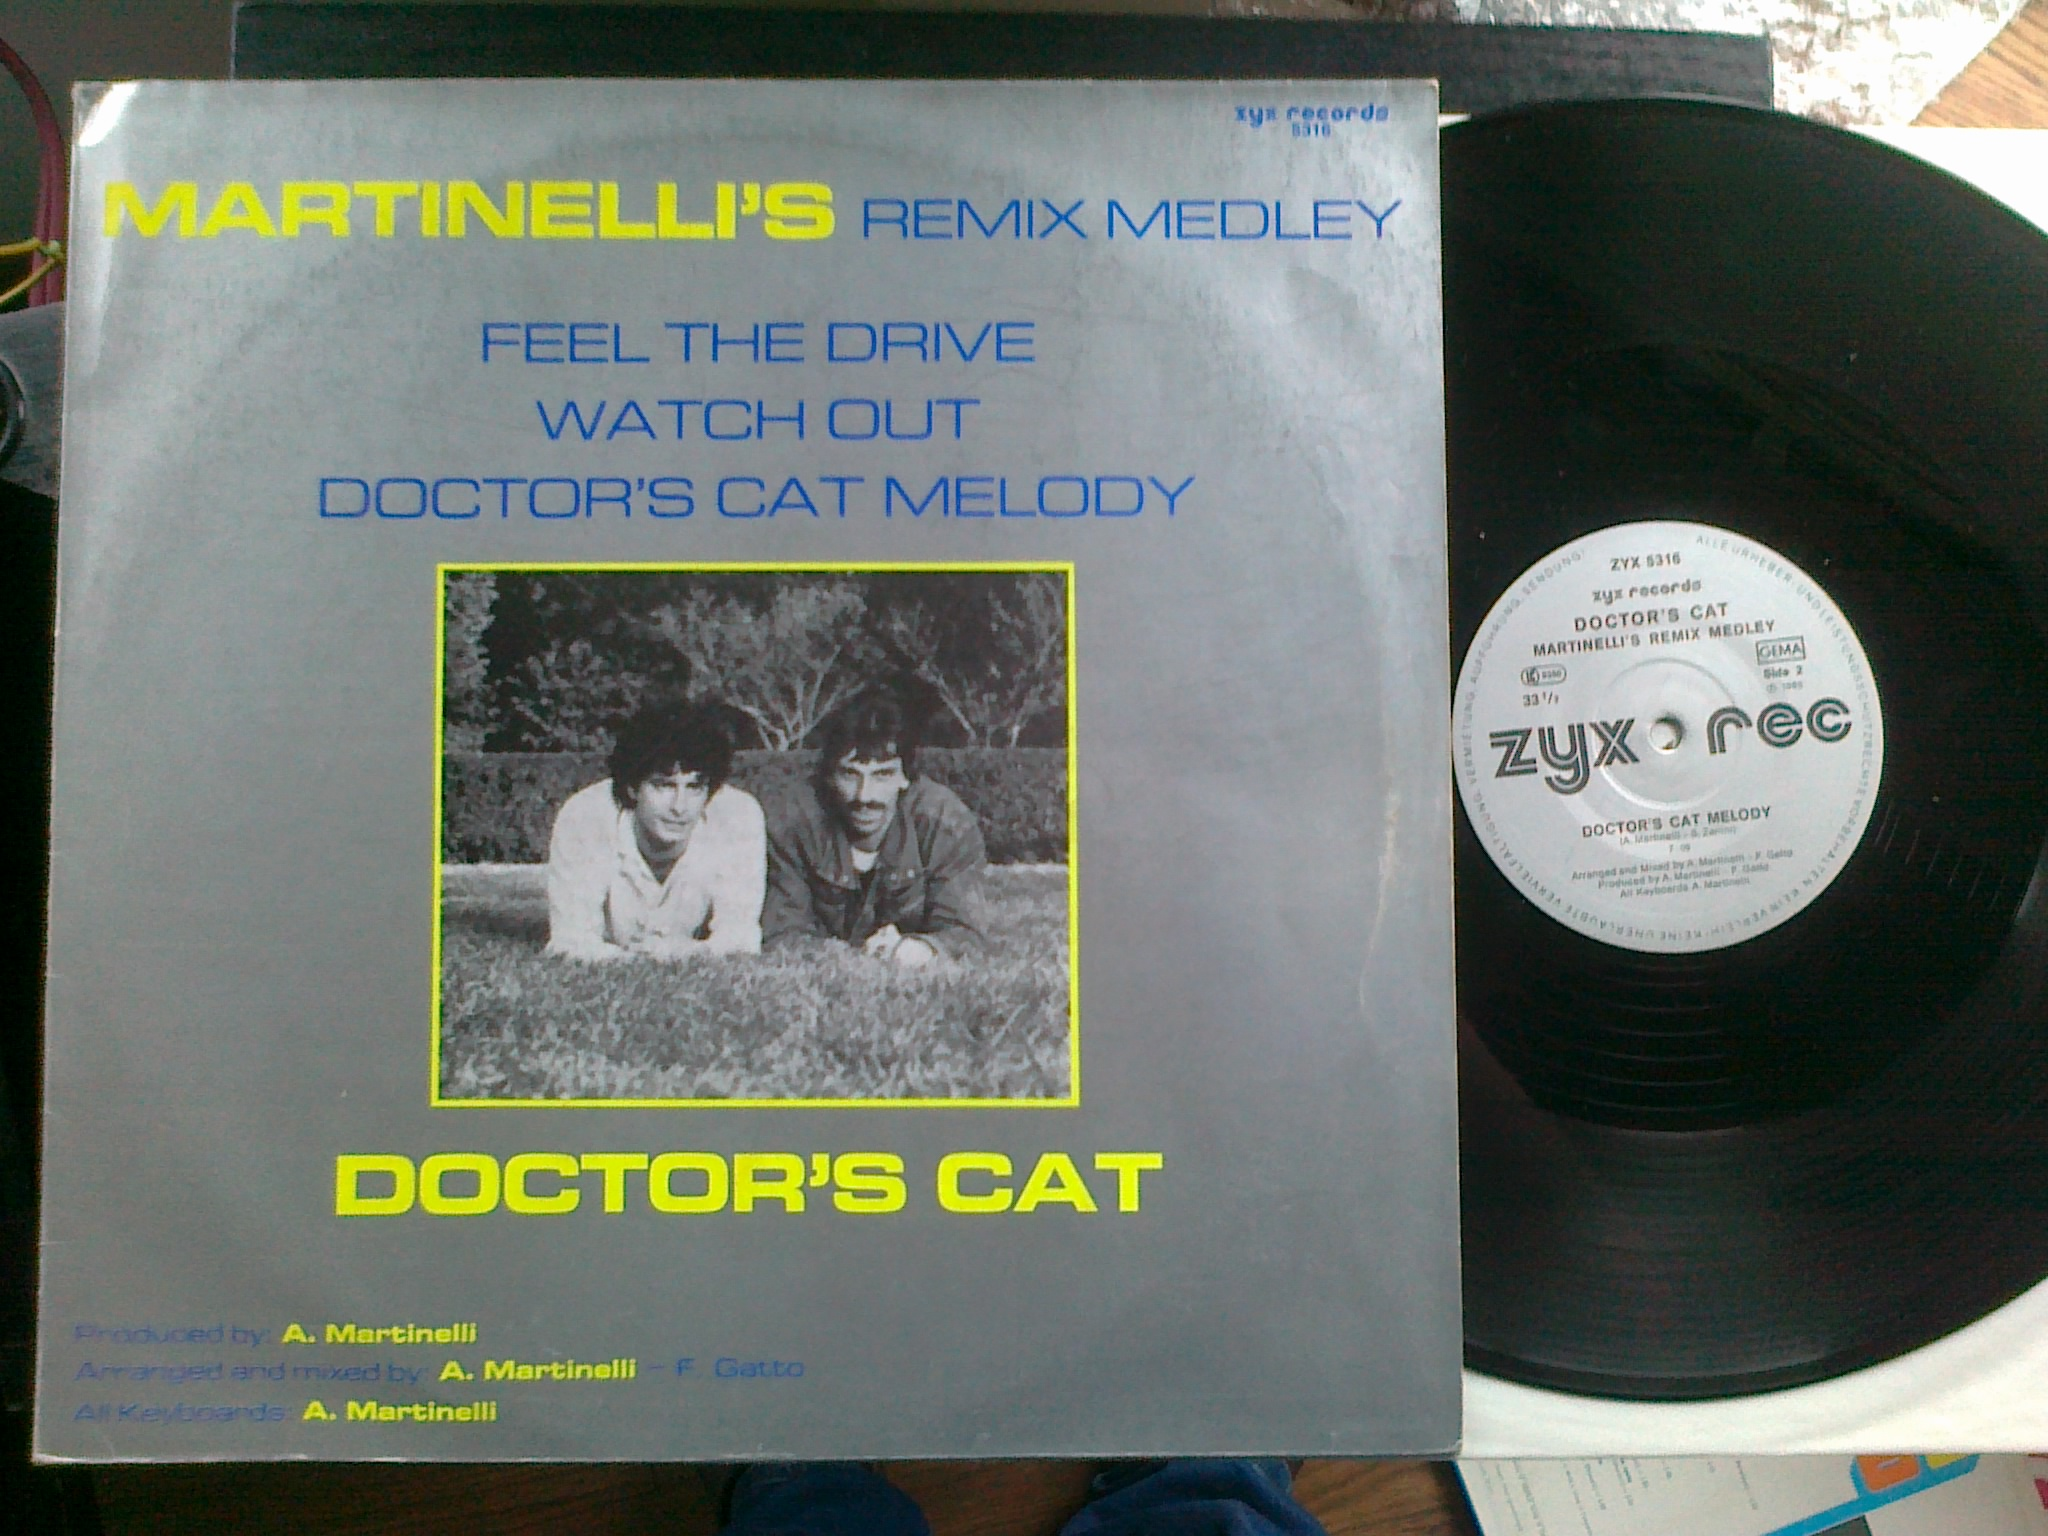 Doctor's Cat - Martinelli's Remix Medley